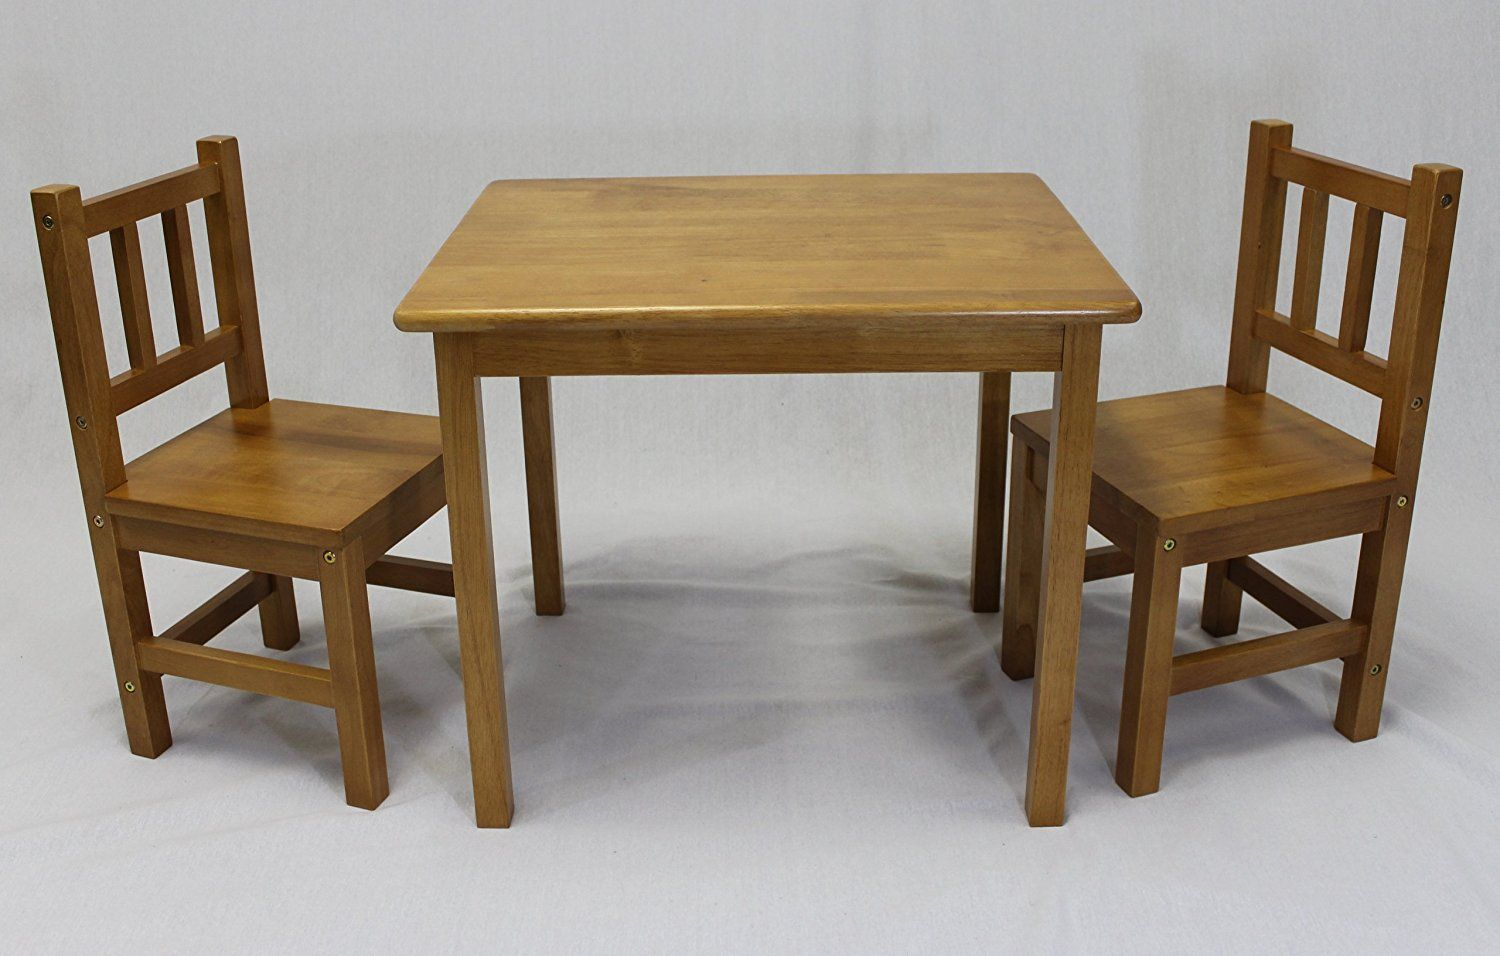 Kids Wooden Table And Chairs Amazon Com Ehemco Kids Table And 2 Chairs Set Solid Hard Medczye Kids Table And Chairs Table And Chair Sets Pub Table Sets